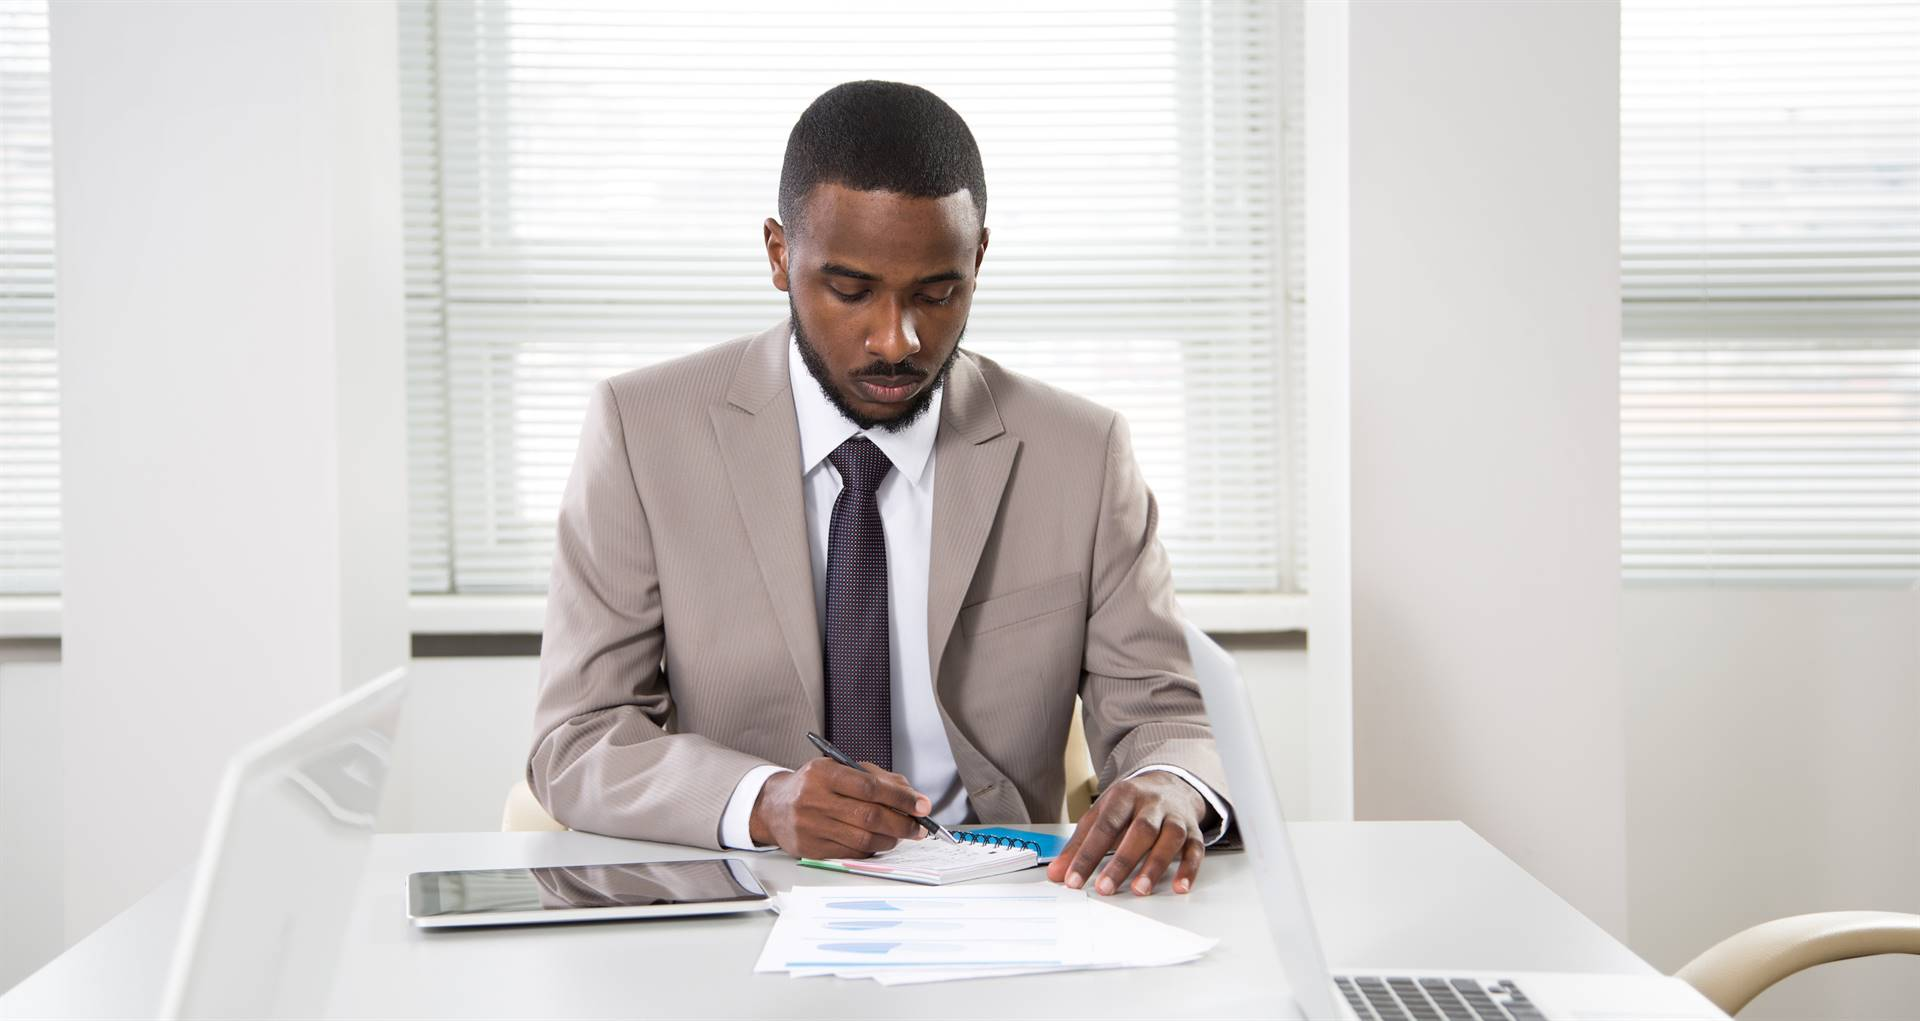 The executive suite is still dominated by white men, but change is happening slowly. Picture: iStock